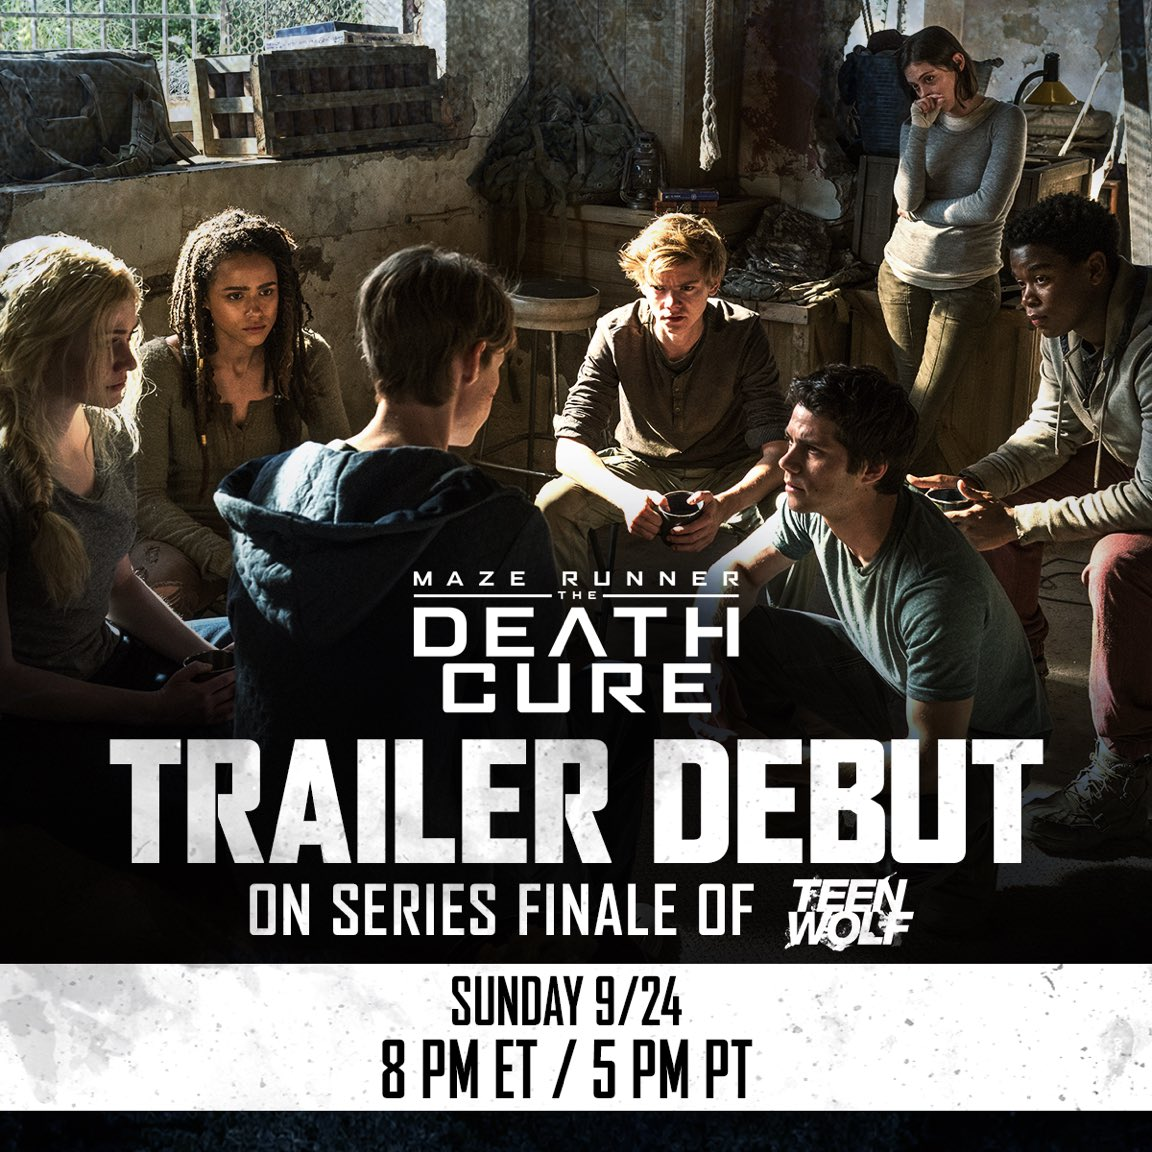 Tune in to the series finale of @MTVTeenWolf this Sunday, 9/24 at 8 PM ET / 5 PM PT for the new #DeathCure Trailer. https://t.co/Q8qBgQttkm